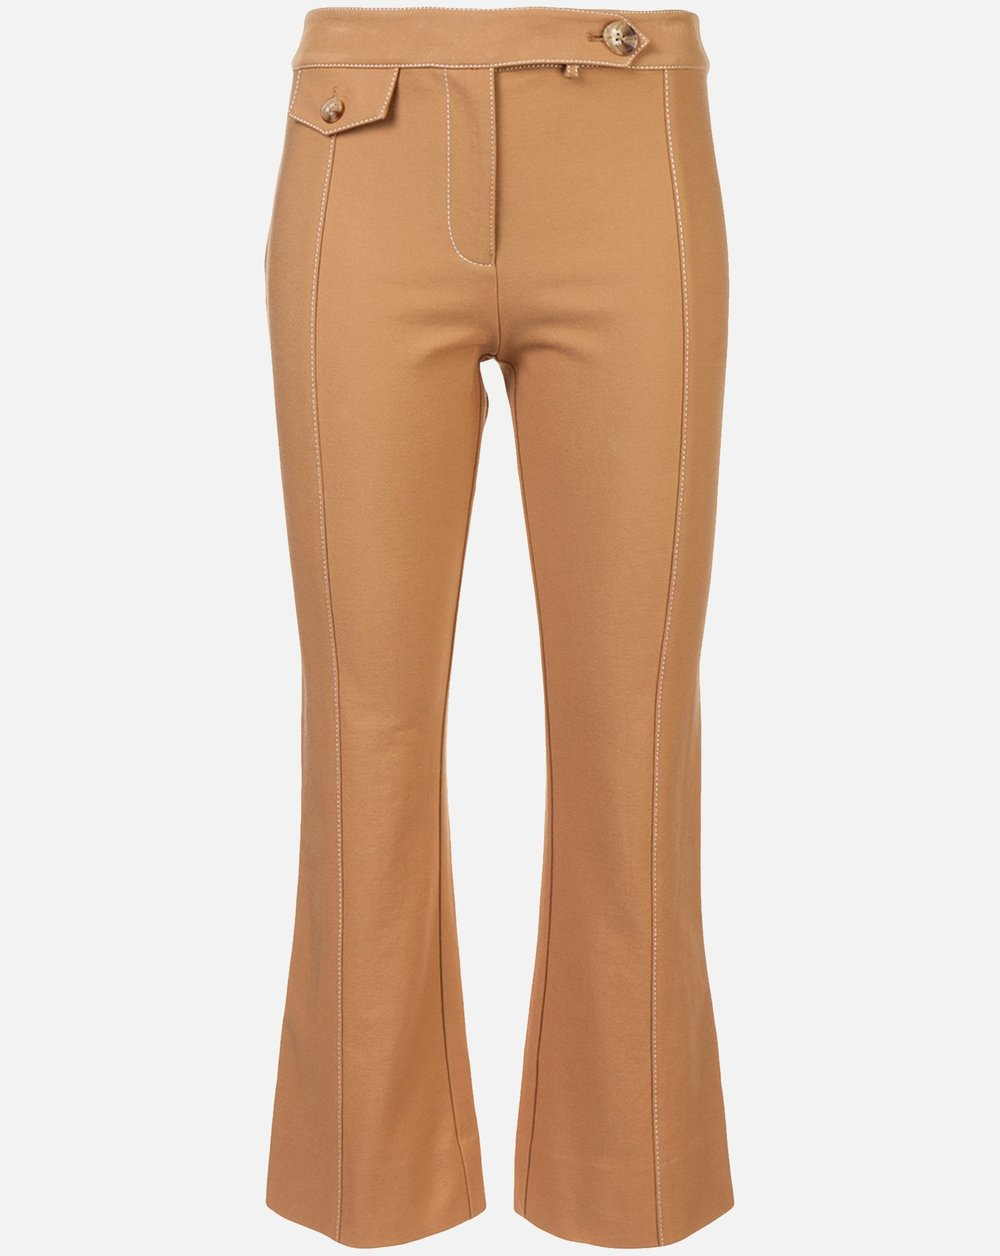 Cropped Flare Trouser with Tab Detail - Camel